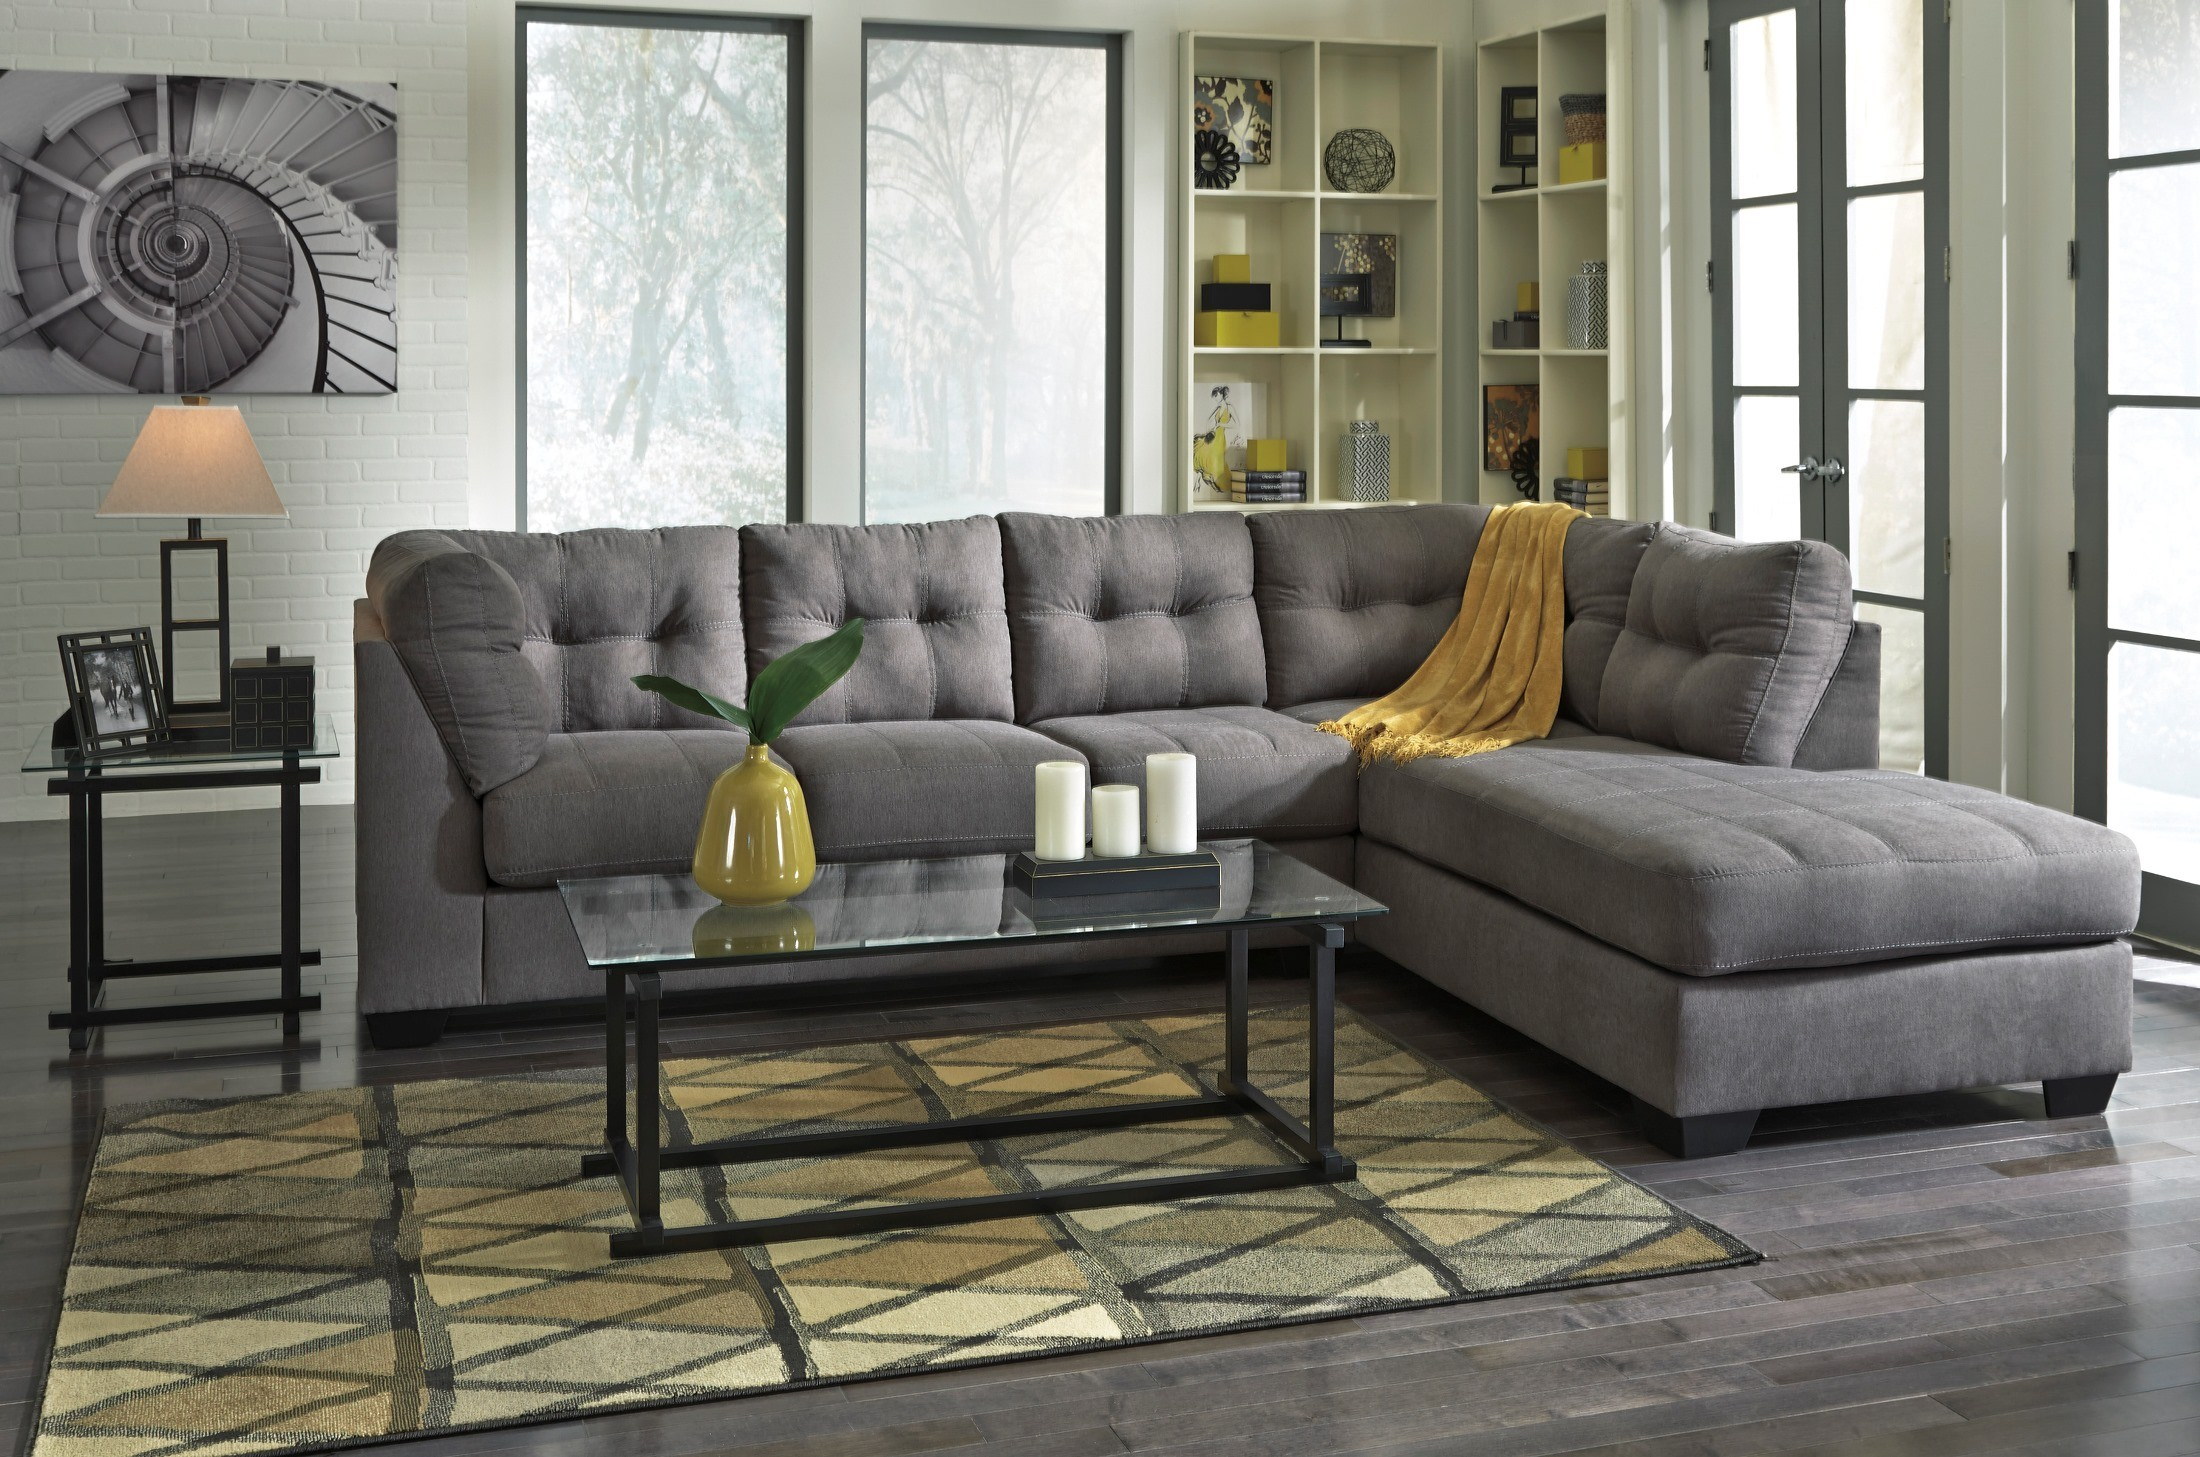 490594 : ashley furniture sectional - Sectionals, Sofas & Couches